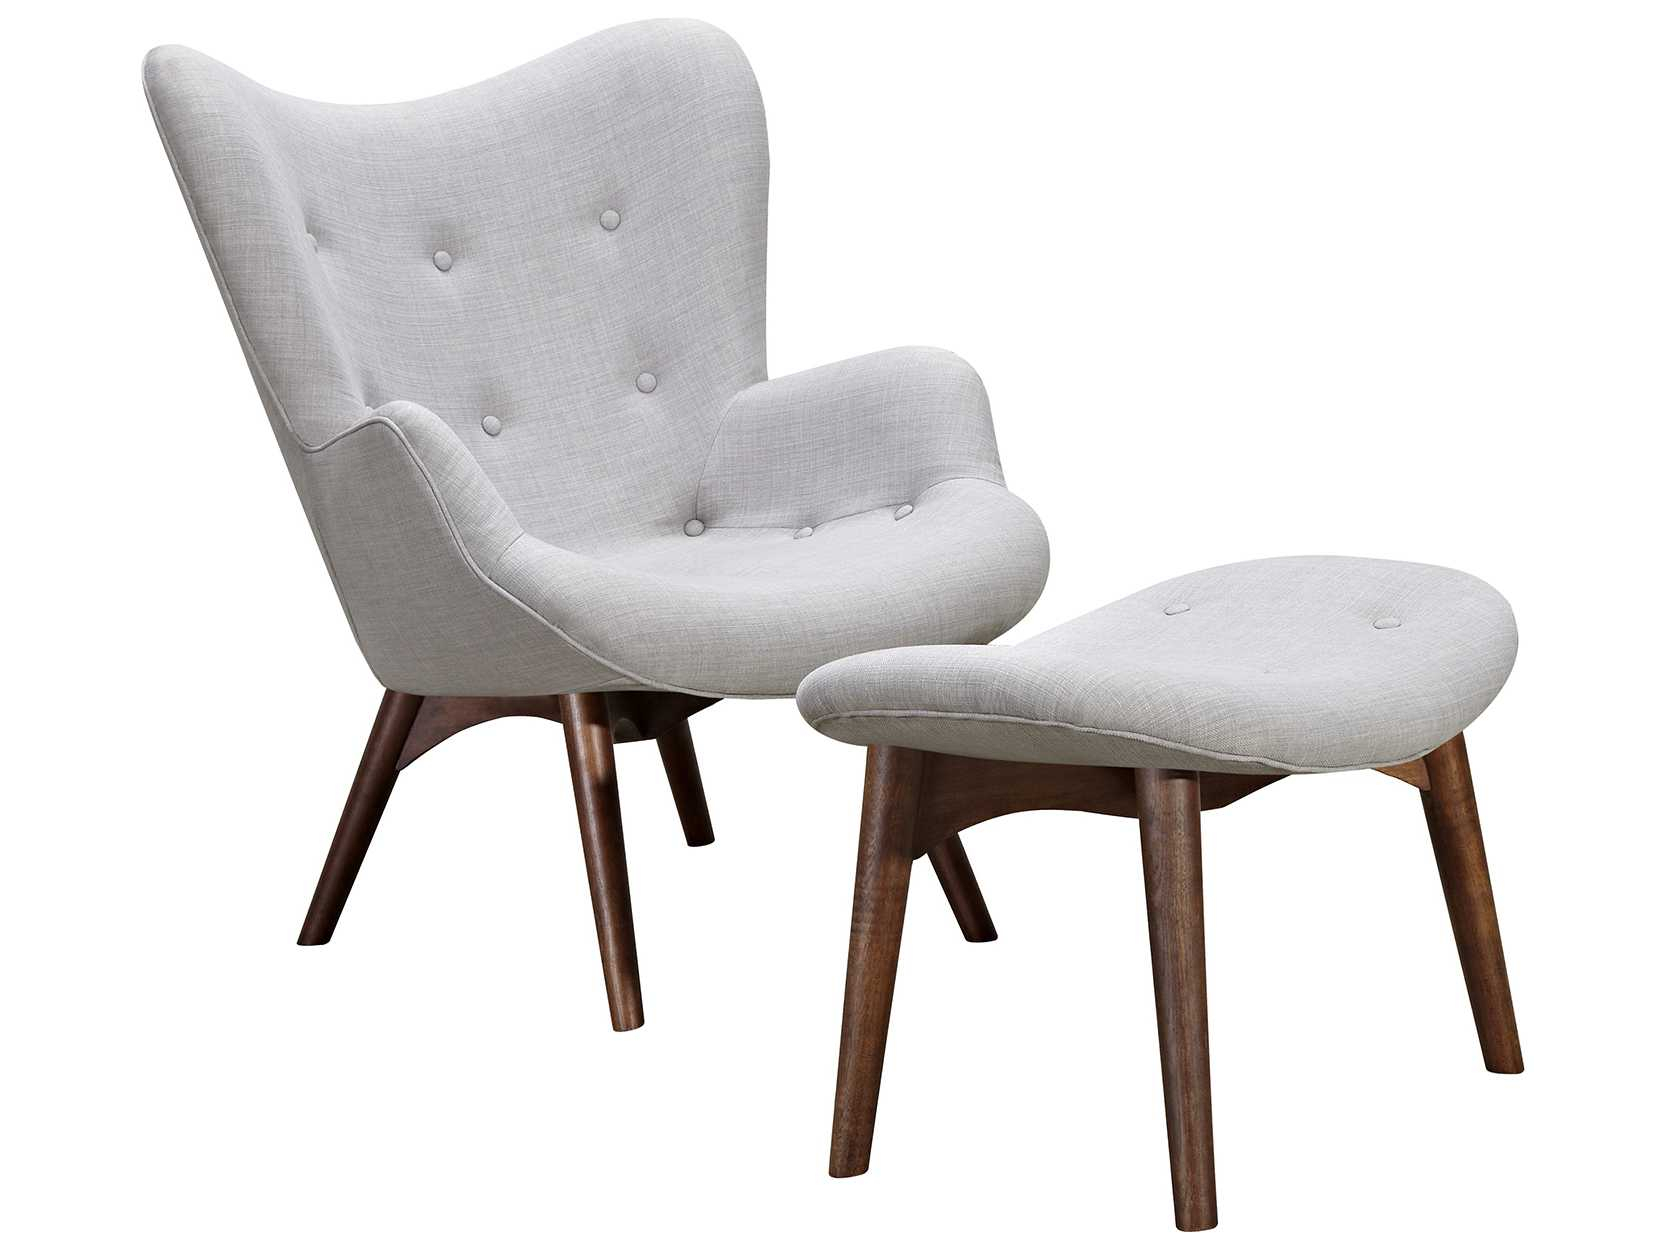 Nyekoncept Aiden Glacier White Accent Chair & Ottoman With Walnut Throughout Aidan Ii Swivel Accent Chairs (View 12 of 25)